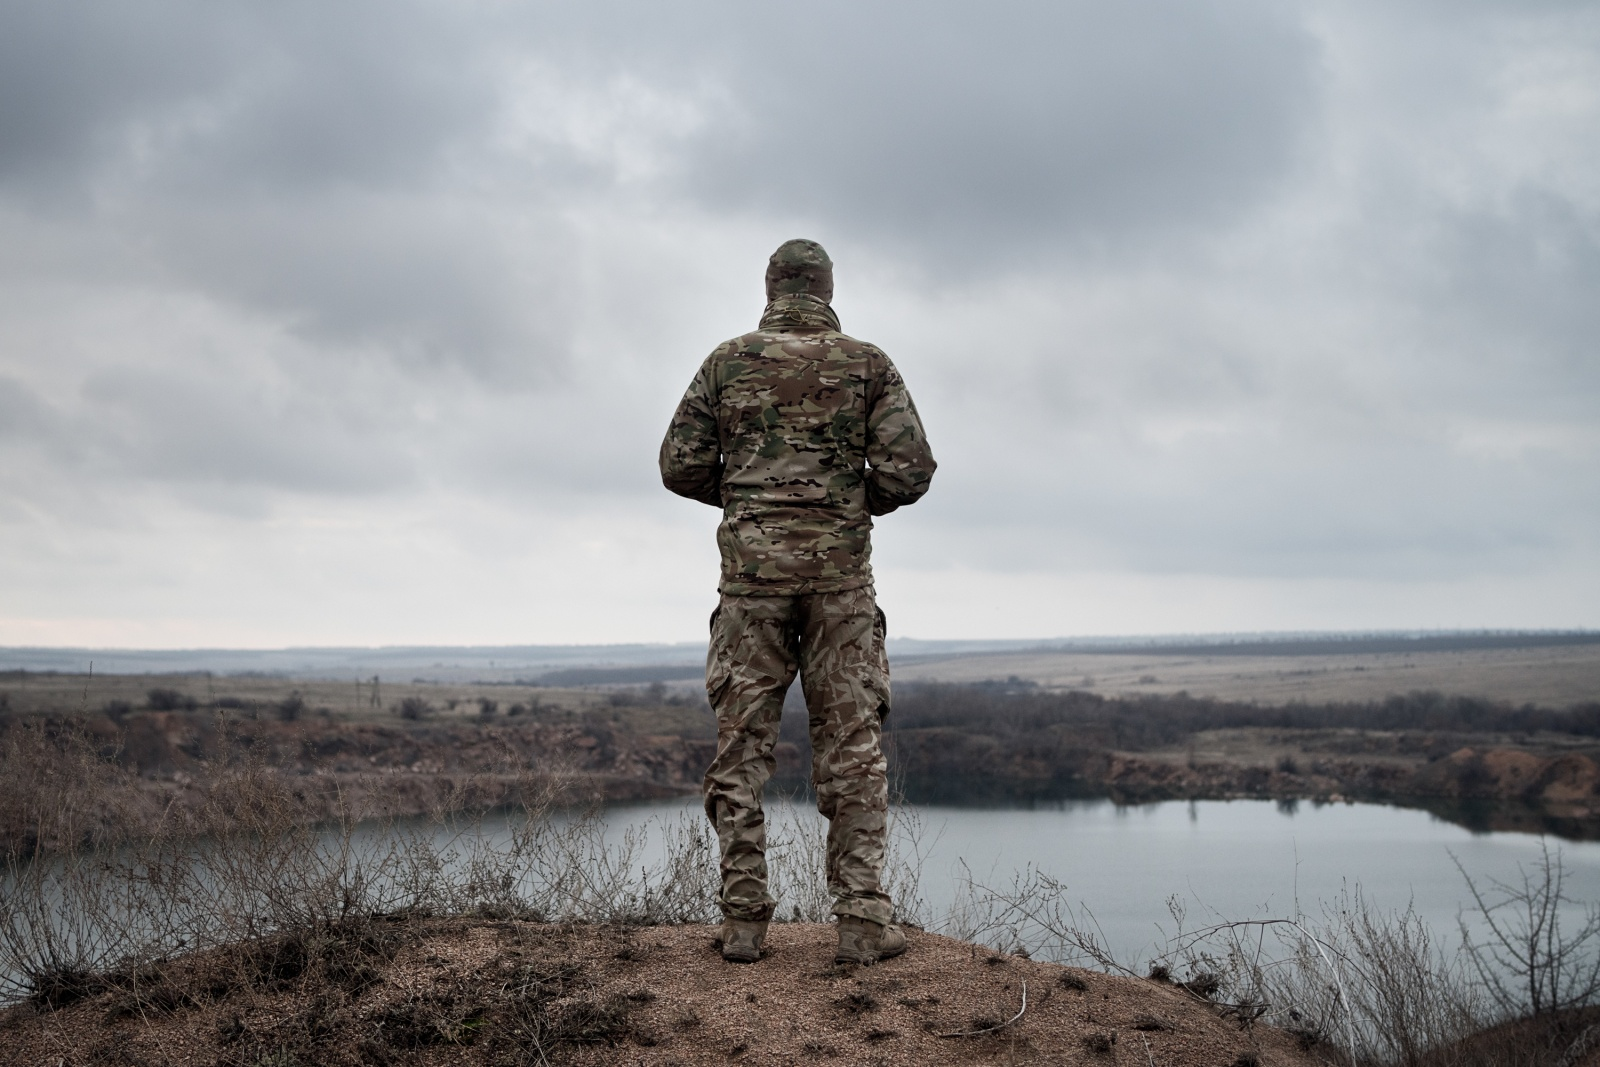 OVER THERE - Volnovakha, Donbas (Ukraine) December 15, 2018 A Ukrainian soldier from the 128 Mechanized Brigade observes the areas occupied by the separatists north of Volnovakha, in the Donbas. On the horizon, the southern front line that reaches Shyrokyne, on the Azov Sea. According to observers of the OSCE SMM international mission, heavy weapons prohibited by the Minsk agreements are often used in combat. This area is considered strategic for the conquest of Mariupol, home of the most important steel plants in the country: the occupation of the town, already invaded by the pro-Russians in 2014 and then freed, would allow separatists to create a corridor to connect Lugansk and Donetsk to Crimea, the Ukrainian peninsula which in 2014 declared independence thanks to Russia's political and military support.